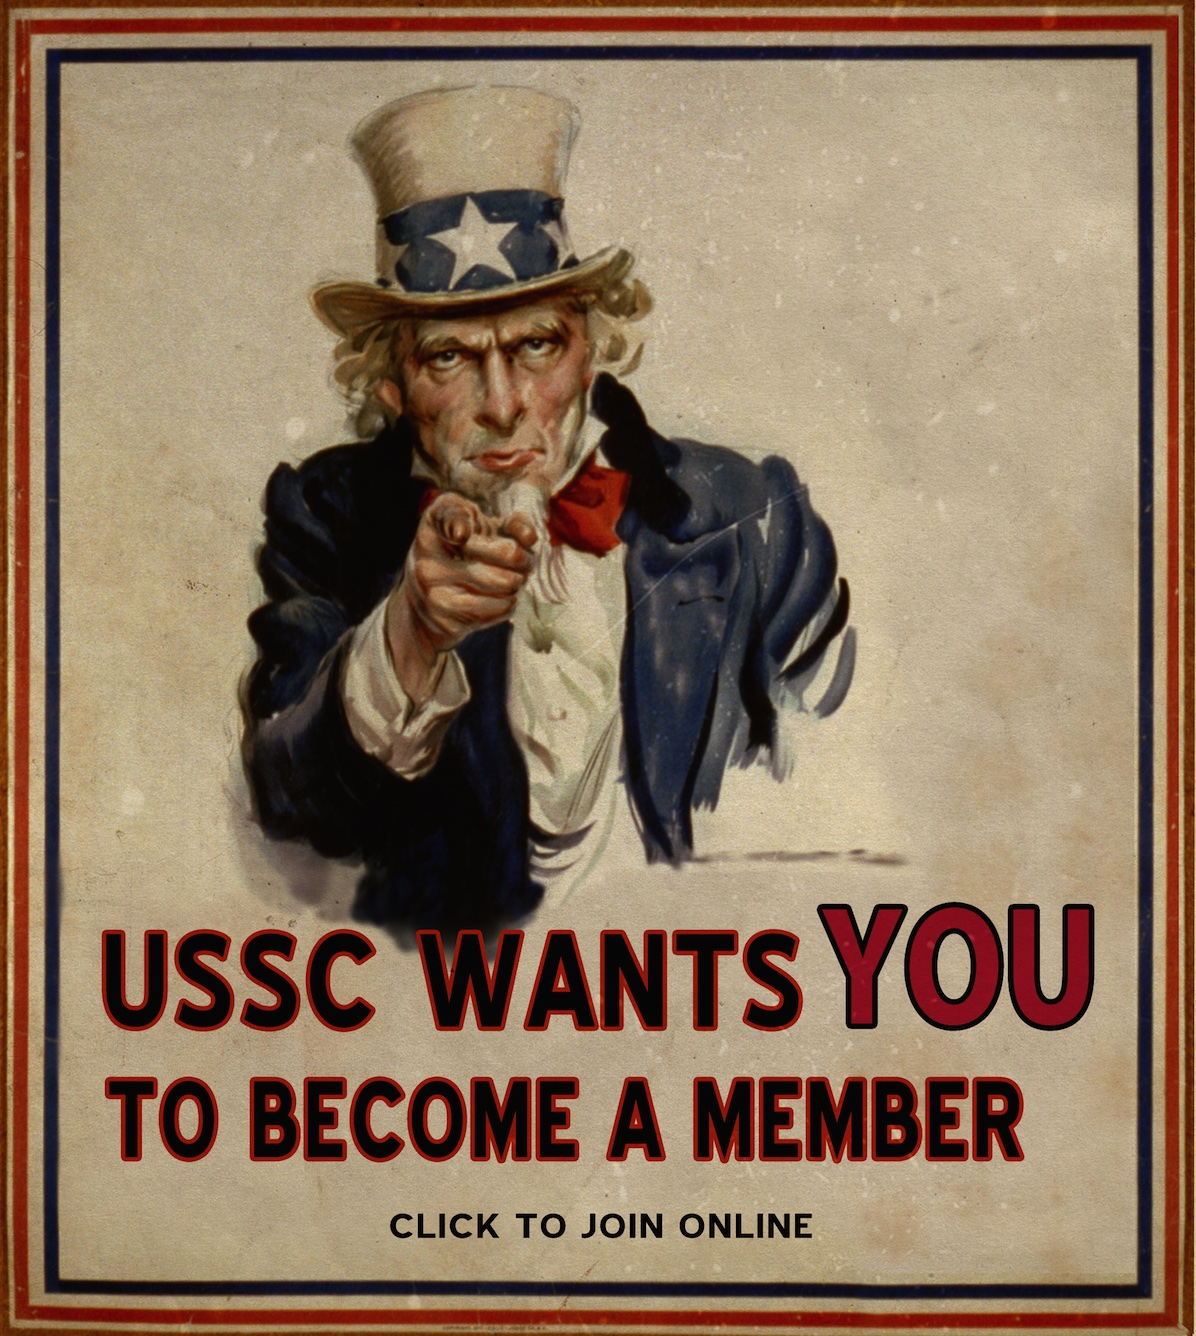 Join the USSC - Uncle Sam Poster